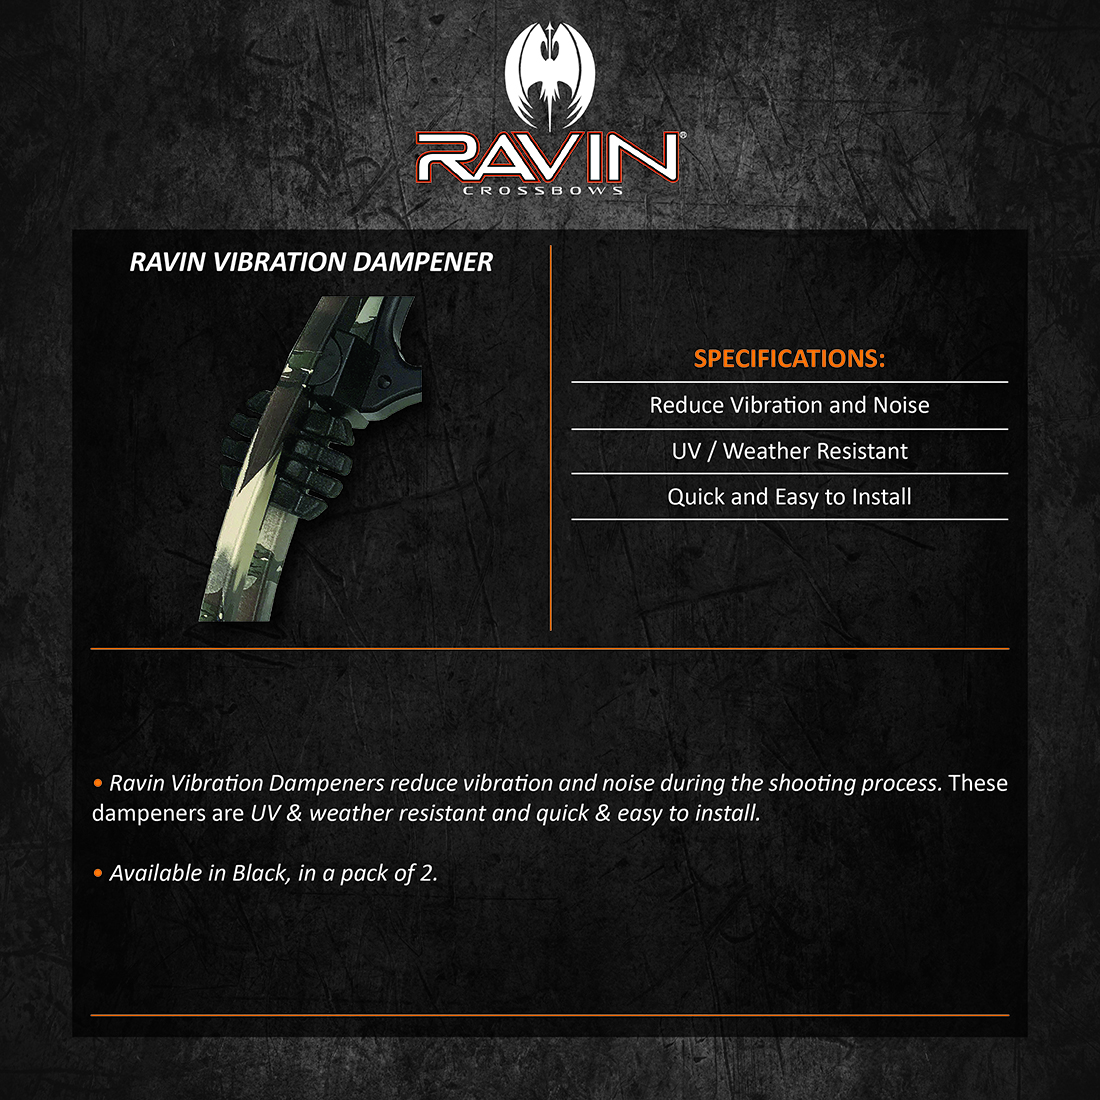 Ravin_Vibration_Dampener_Product_Description